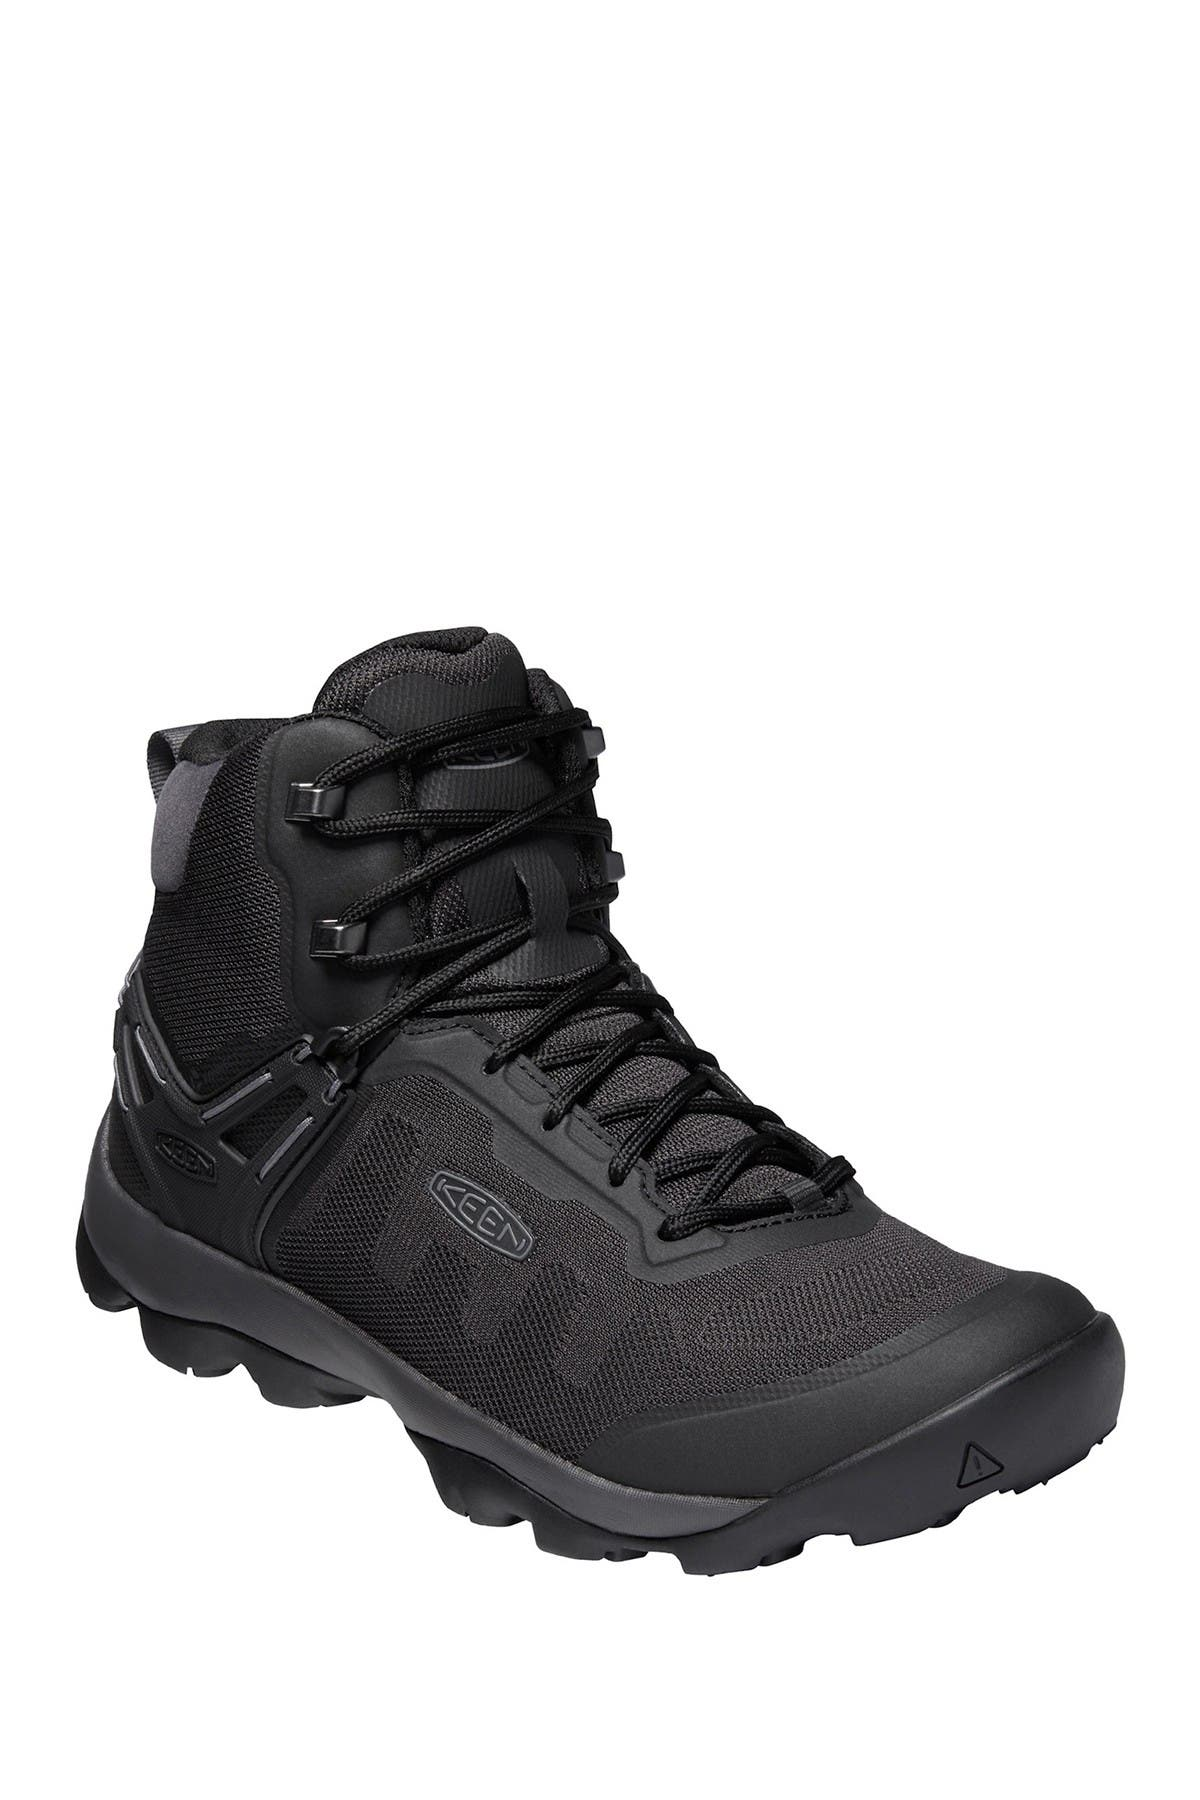 Image of Keen Venture Vent Hiking Boot